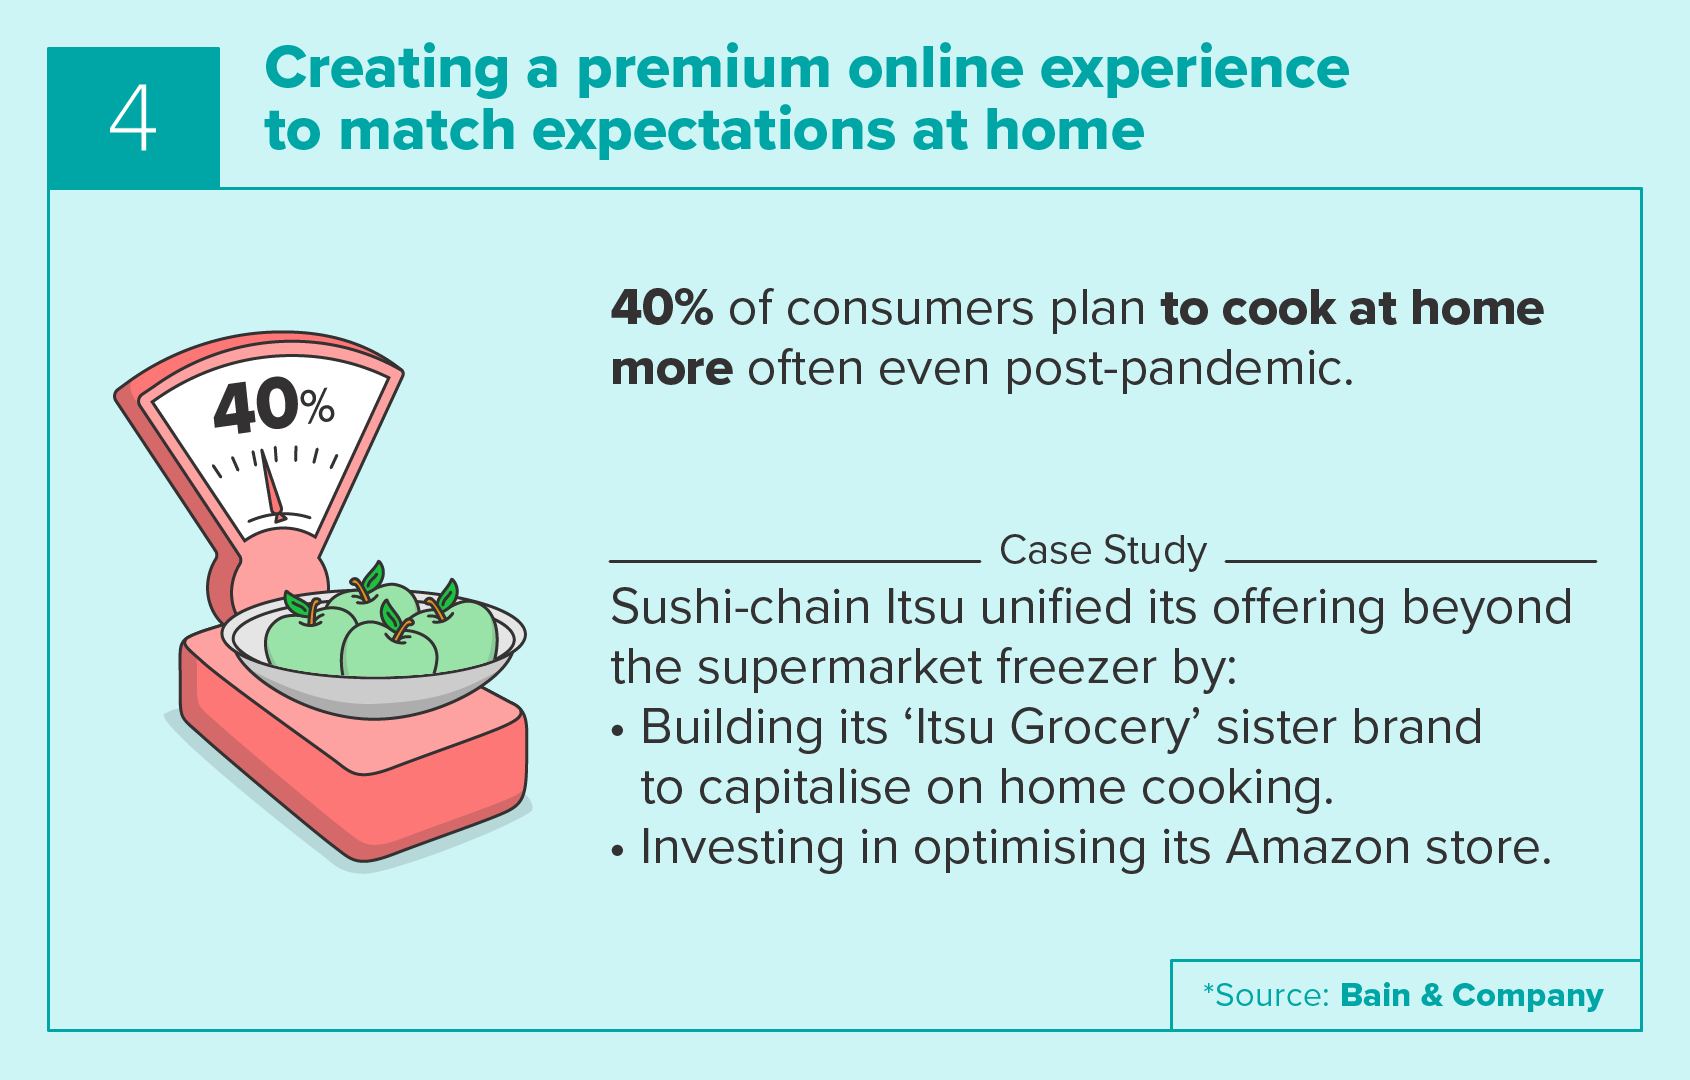 Creating a premium online experience to match expectations at home